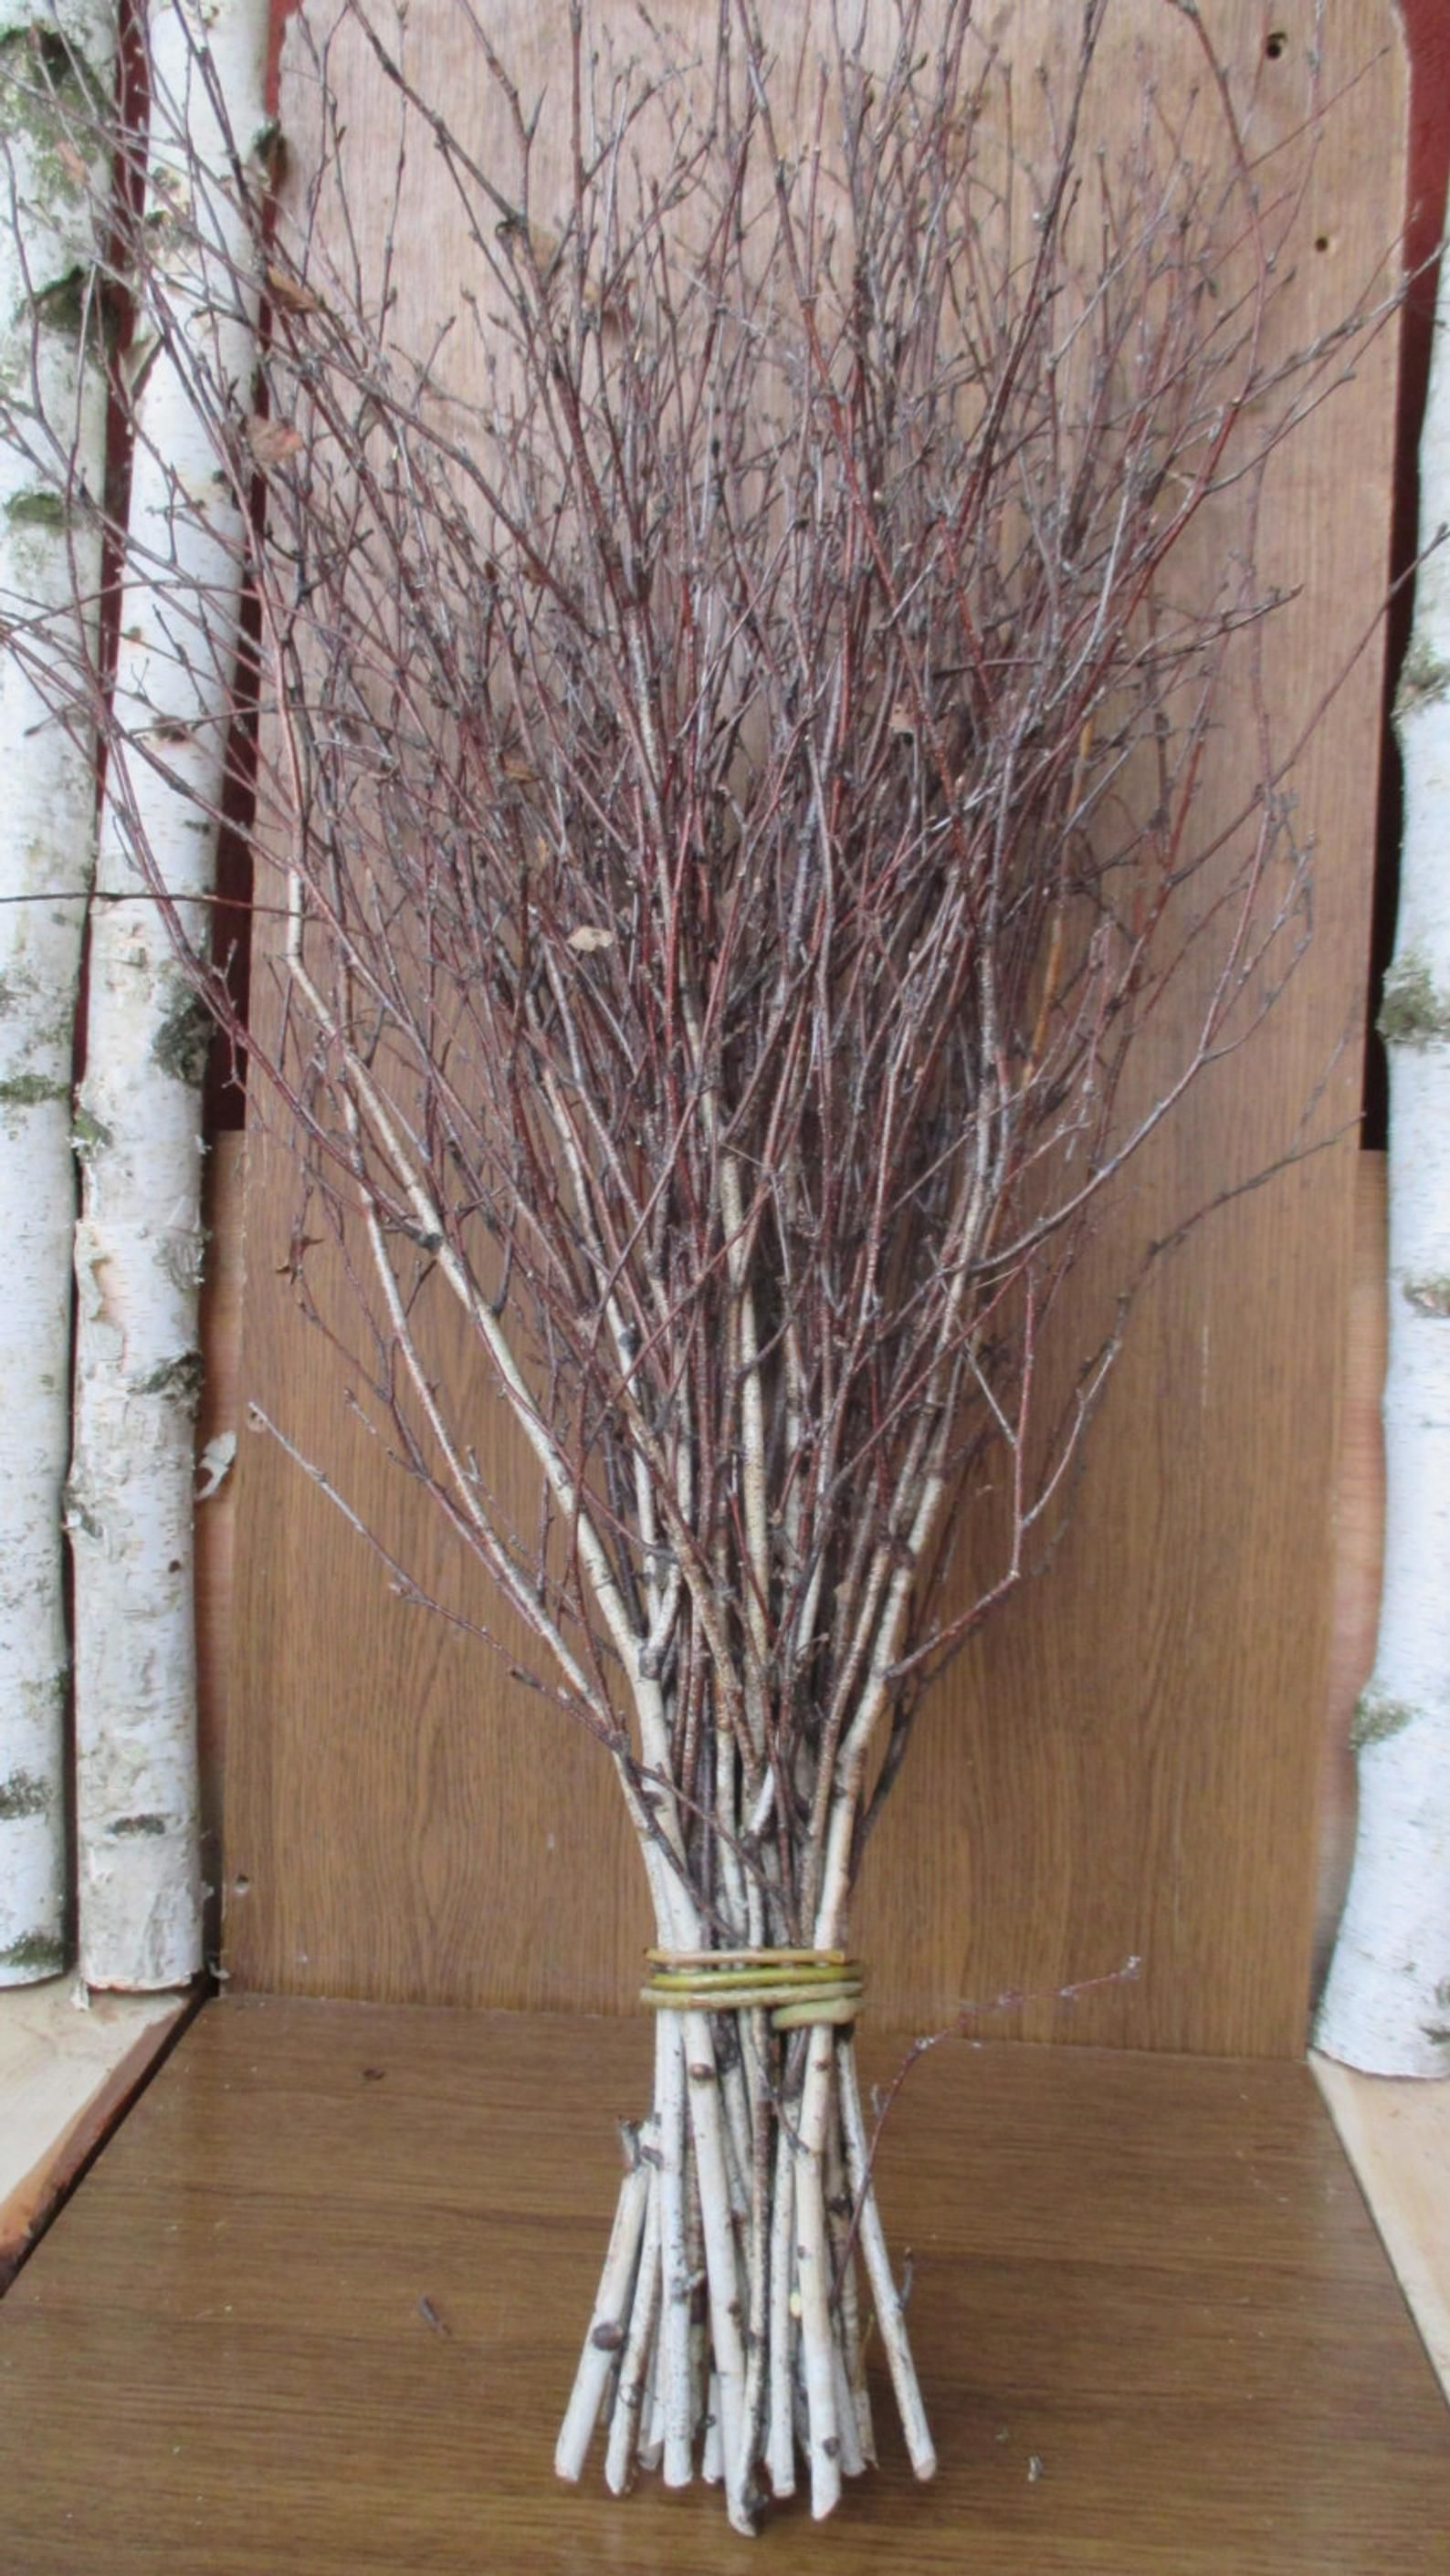 Extra Long Birch Twigs Birch Twigs Birch Tree Branches Birch Twigs Bundle Birch Broom In 2021 Birch Tree Decor Tree Branch Decor Twigs Decor